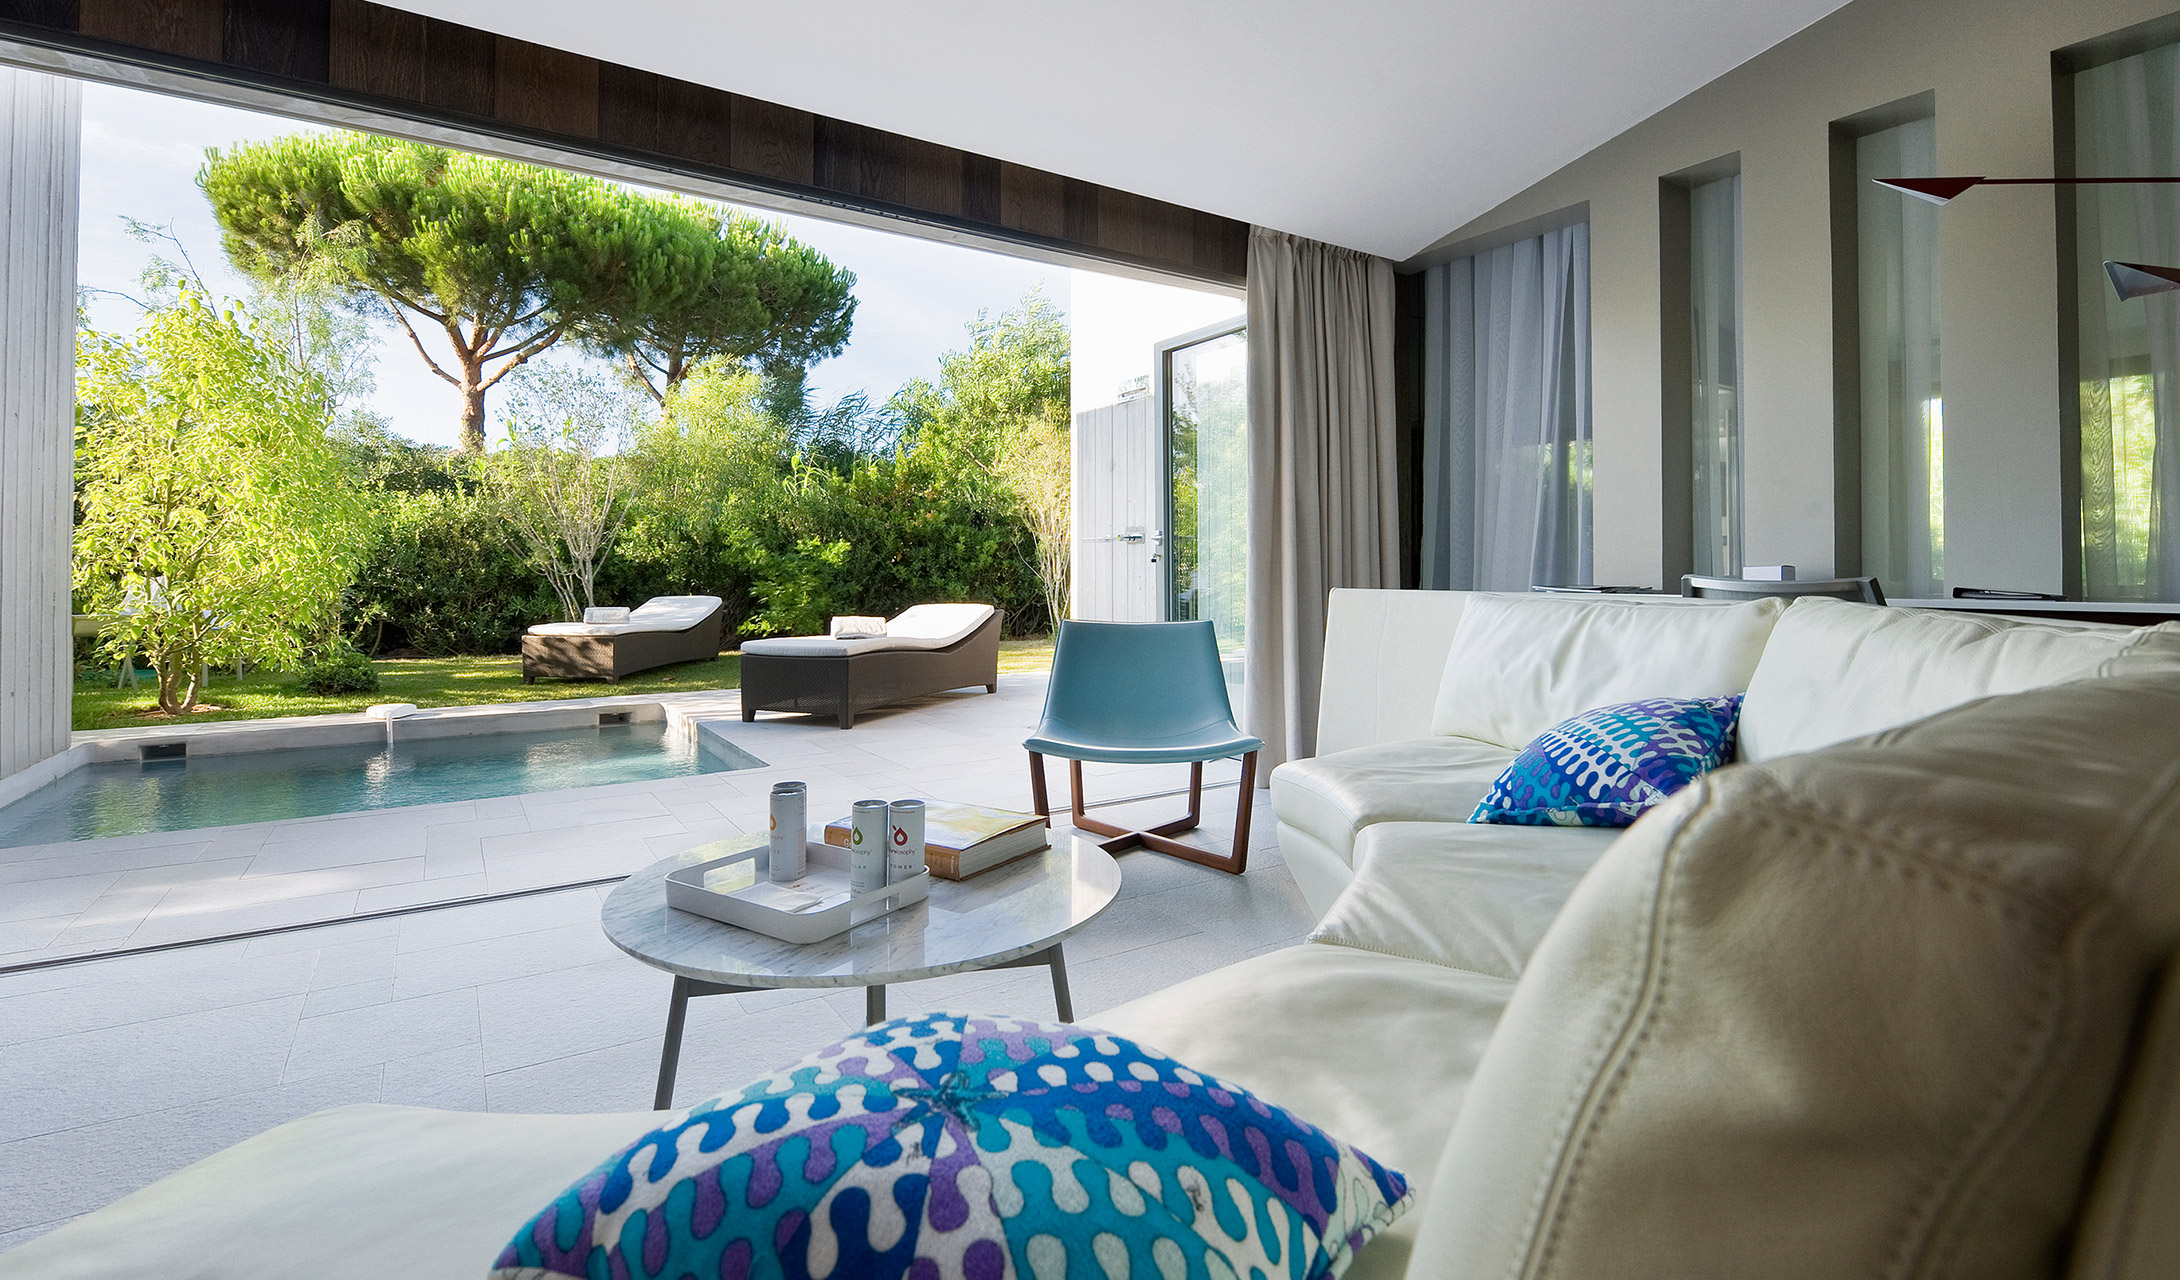 Hotel sezz saint tropez france design hotels for Designhotel q